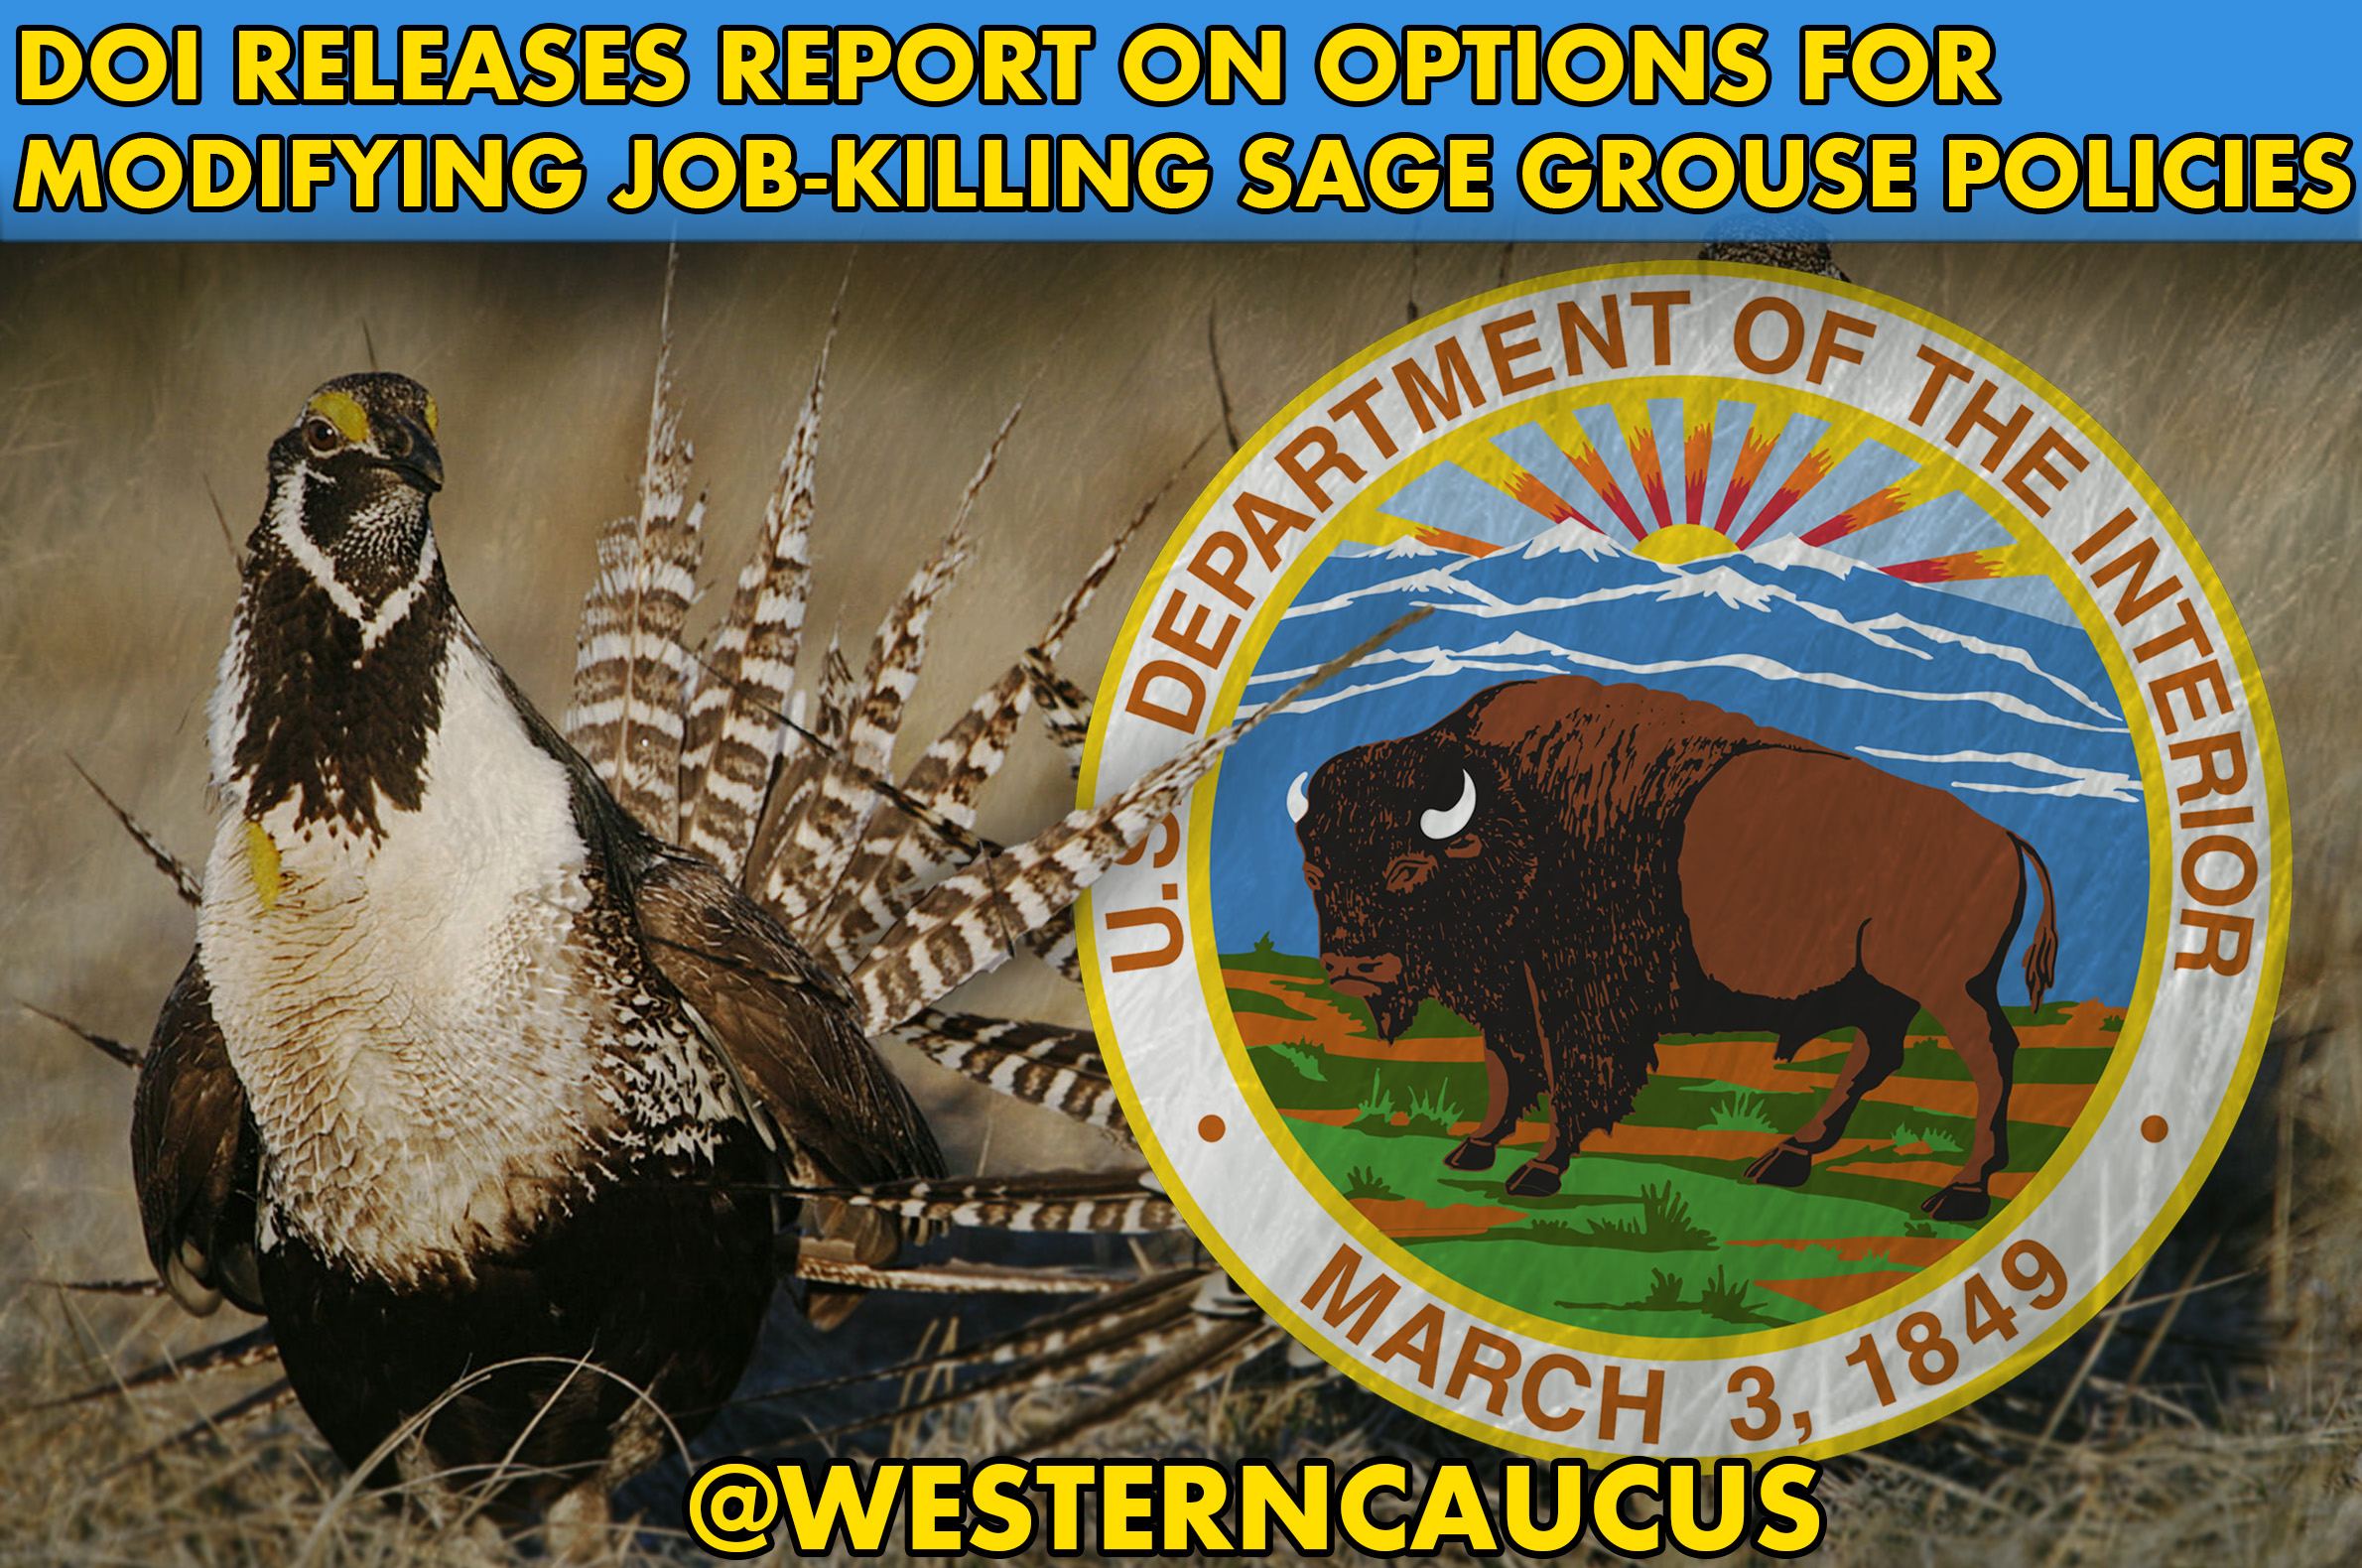 Western Caucus Members Applaud DOI Sage Grouse Report